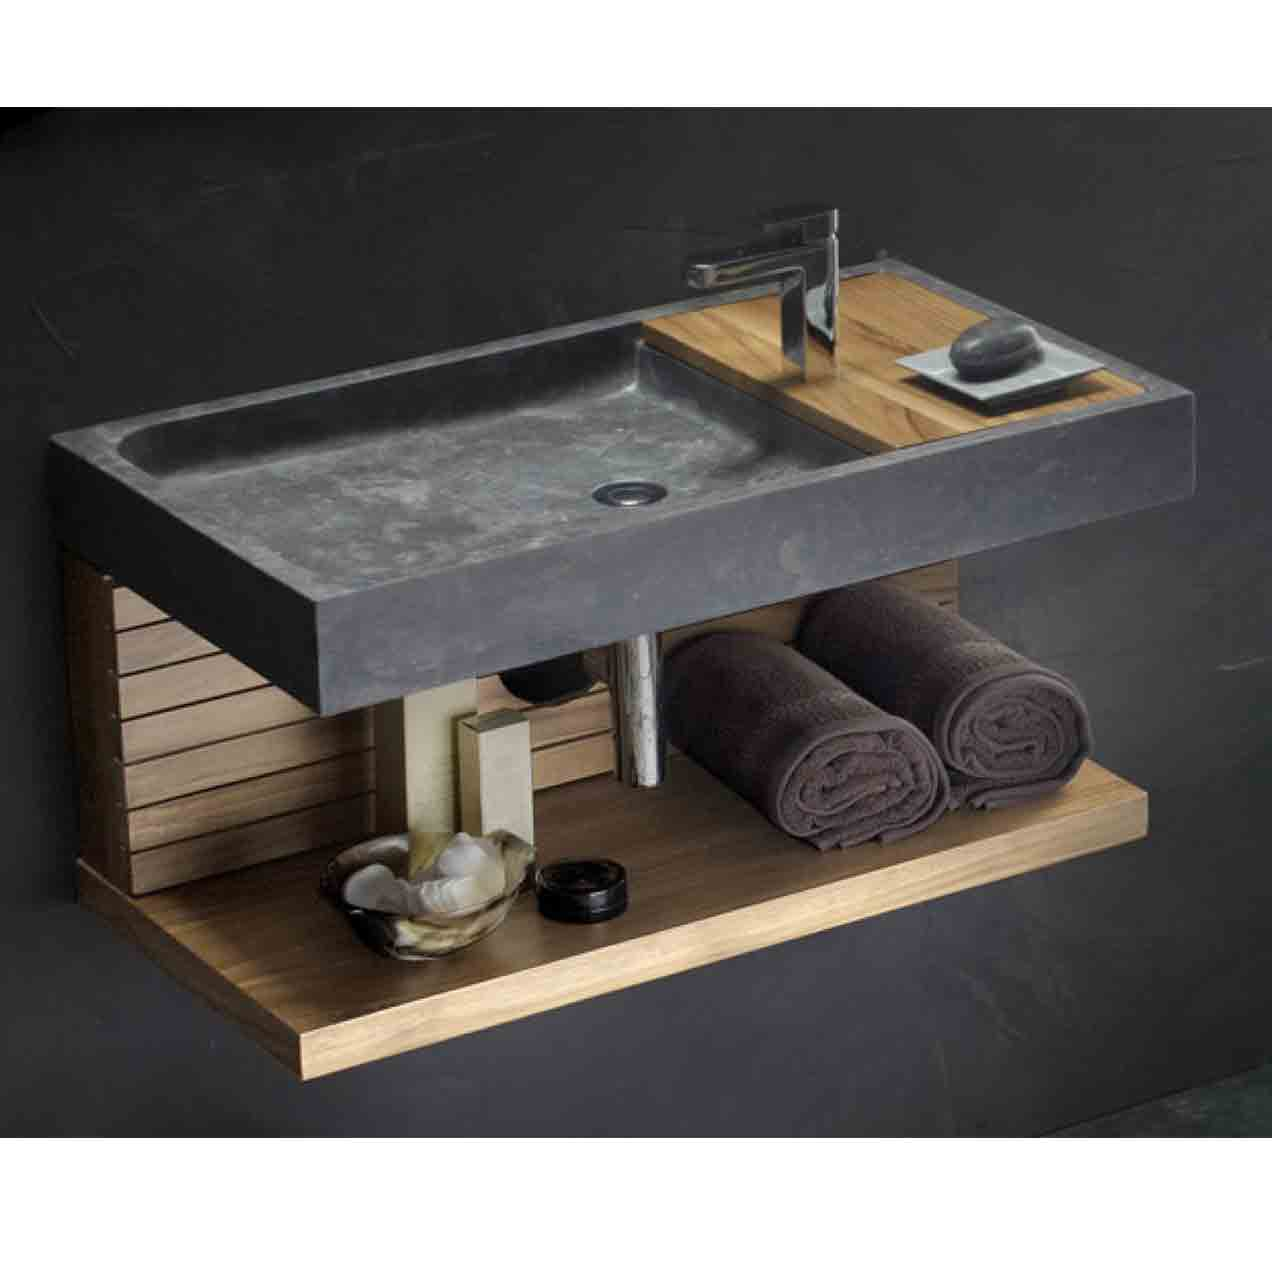 lavabo et meuble salle de bain verona bathco bathco 00348 baignoire baln o aquabains. Black Bedroom Furniture Sets. Home Design Ideas